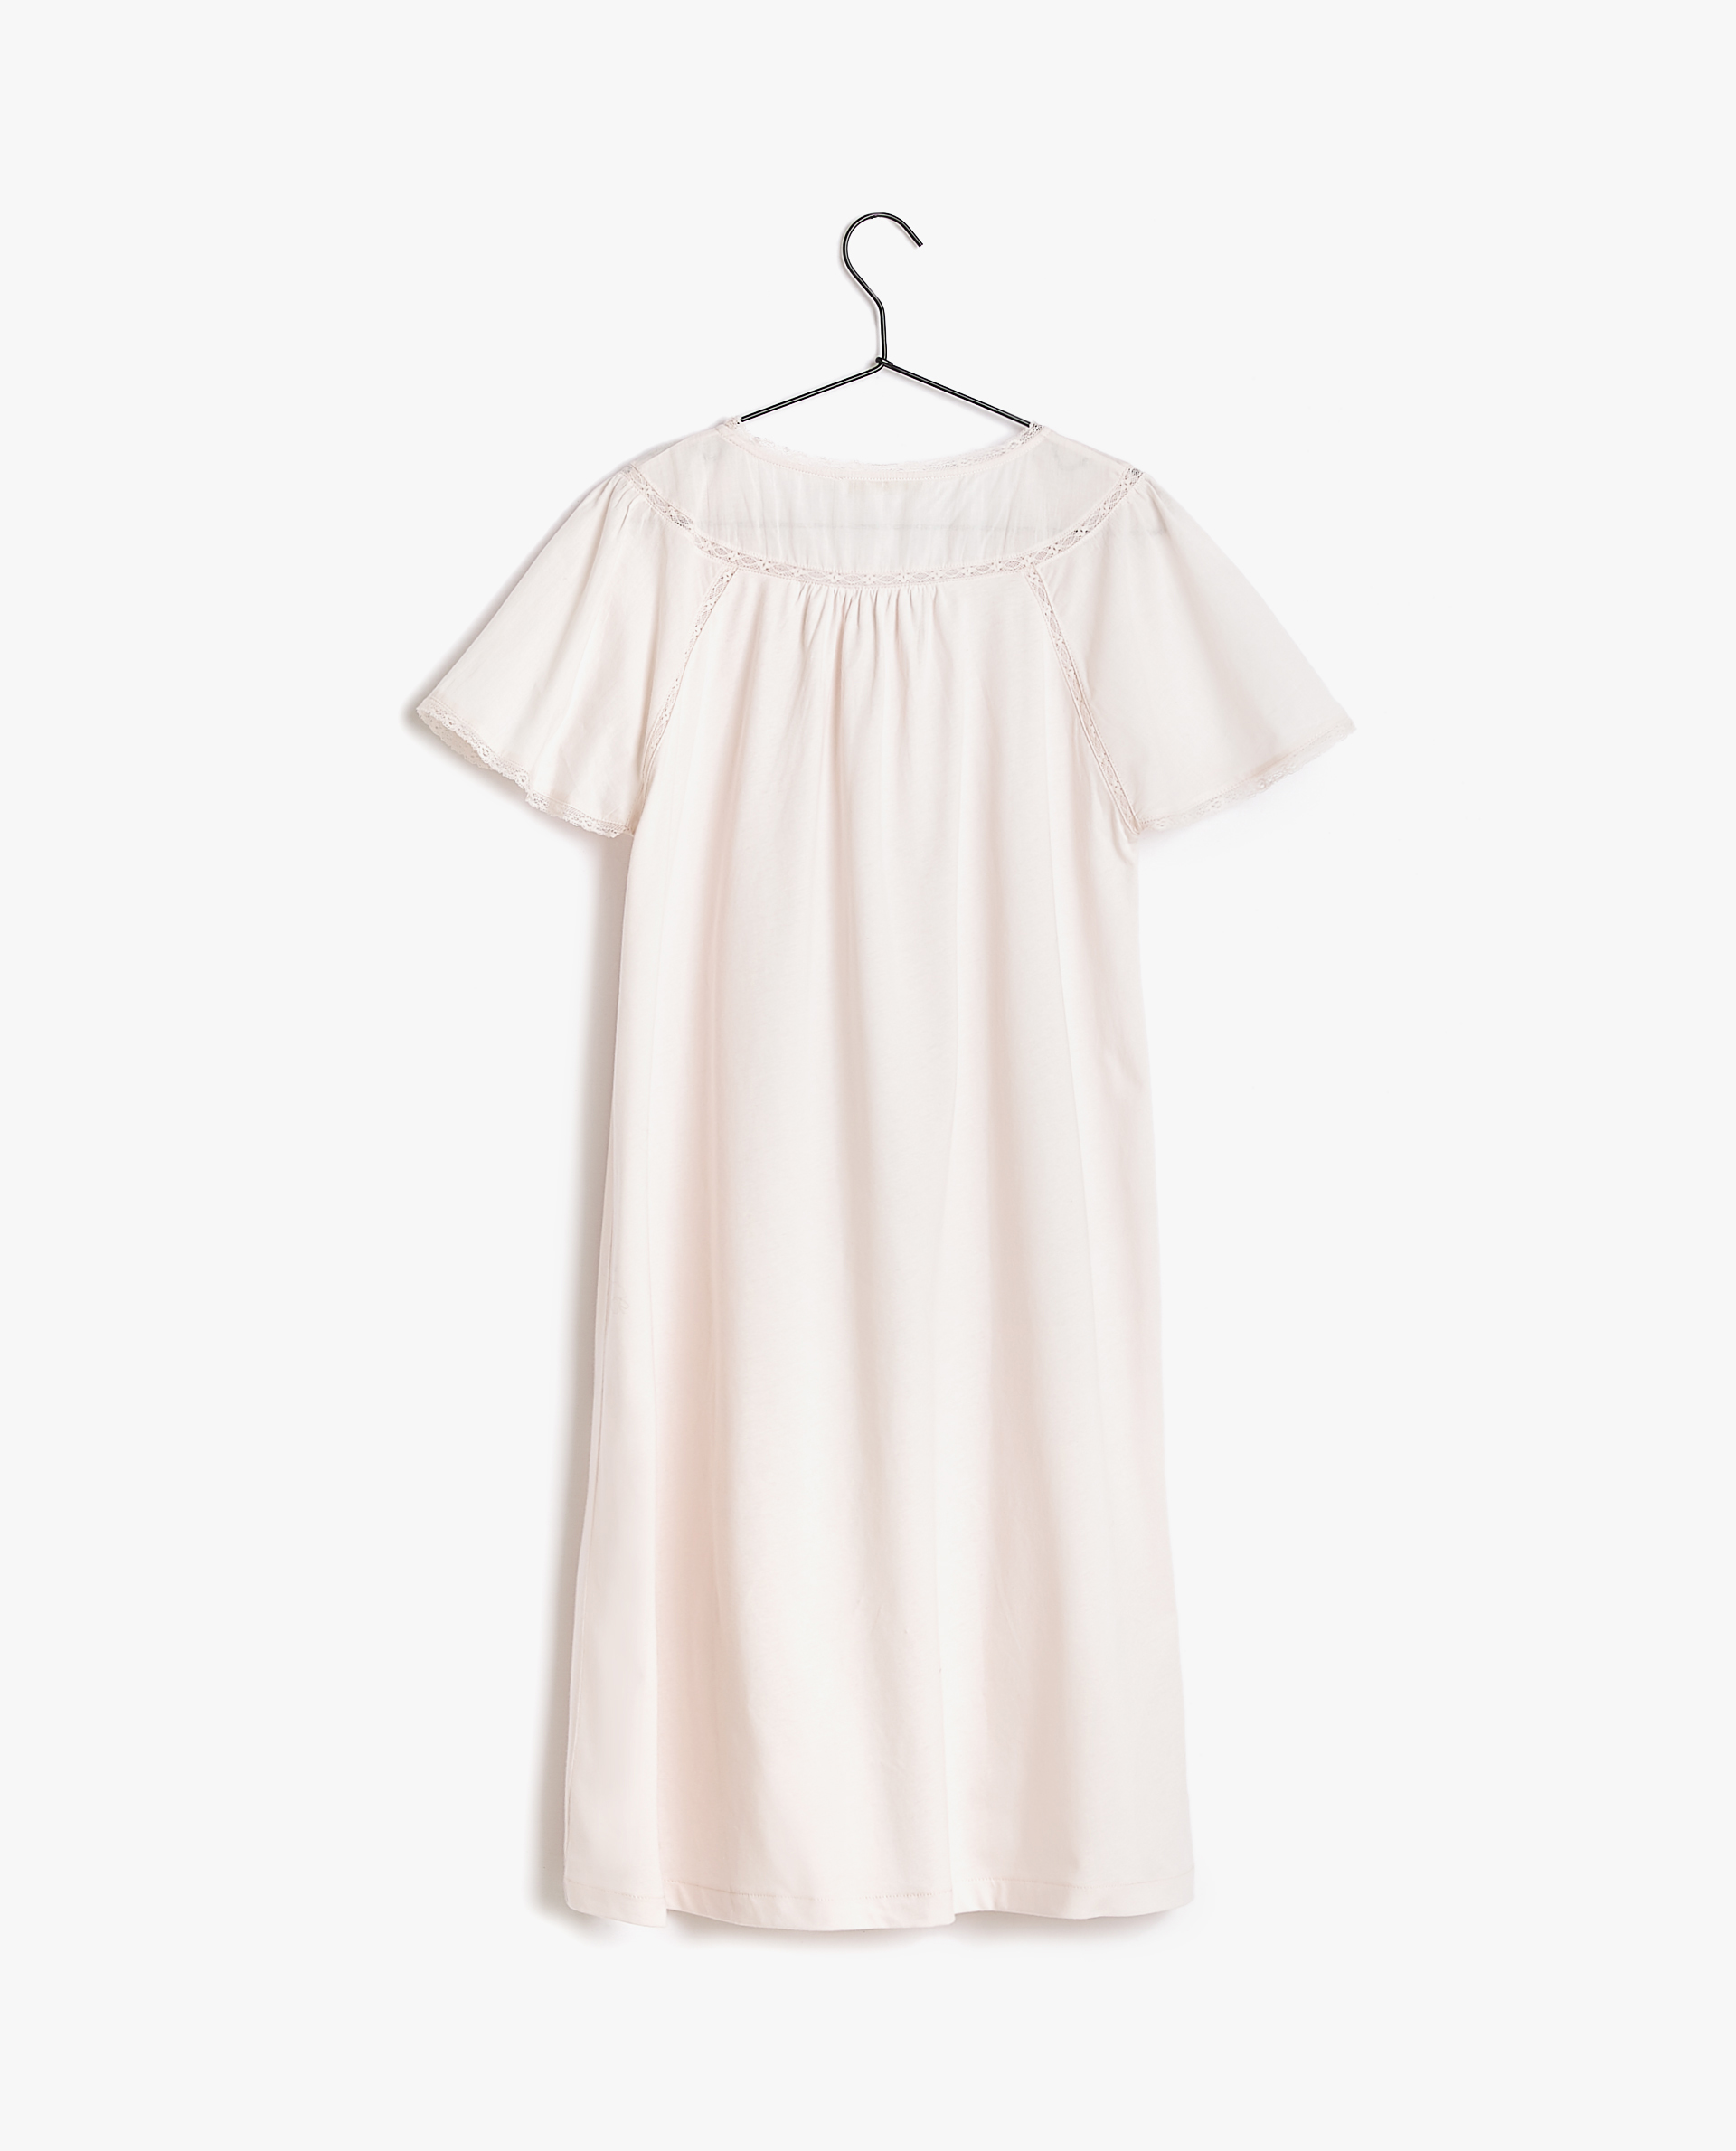 1ae8b86433 EMBROIDERED COTTON JERSEY NIGHTDRESS - WOMEN - CLOTHING - CLOTHING ...